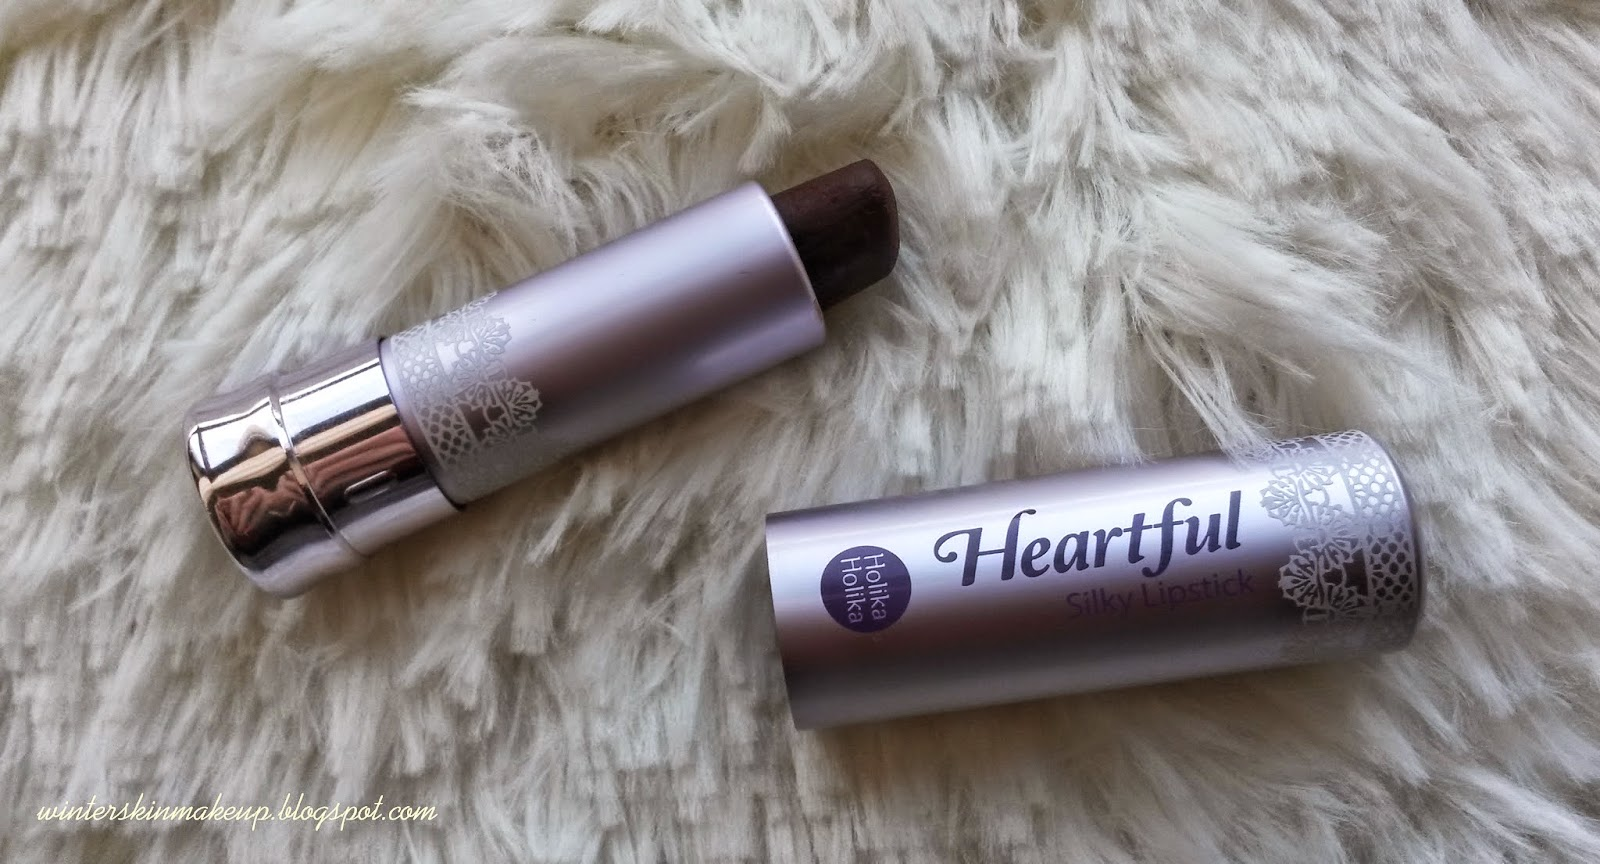 Holika Holika Heartfull Silky Lipstick in Lovely Vampire